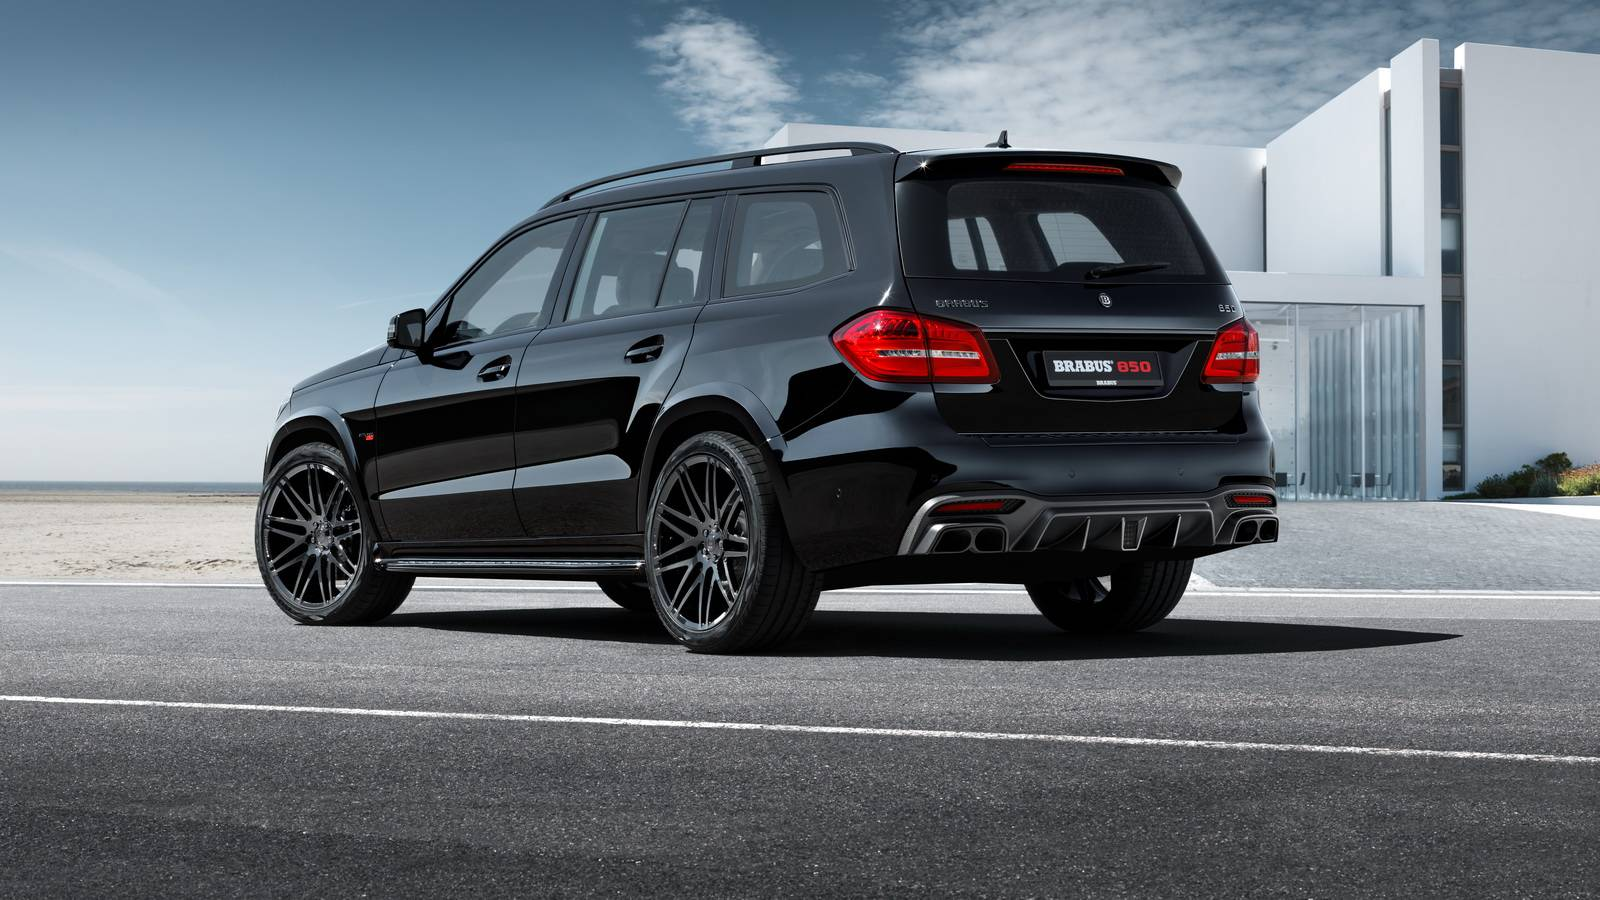 official brabus 850 xl for mercedes amg gls 63 with 850hp gtspirit. Black Bedroom Furniture Sets. Home Design Ideas